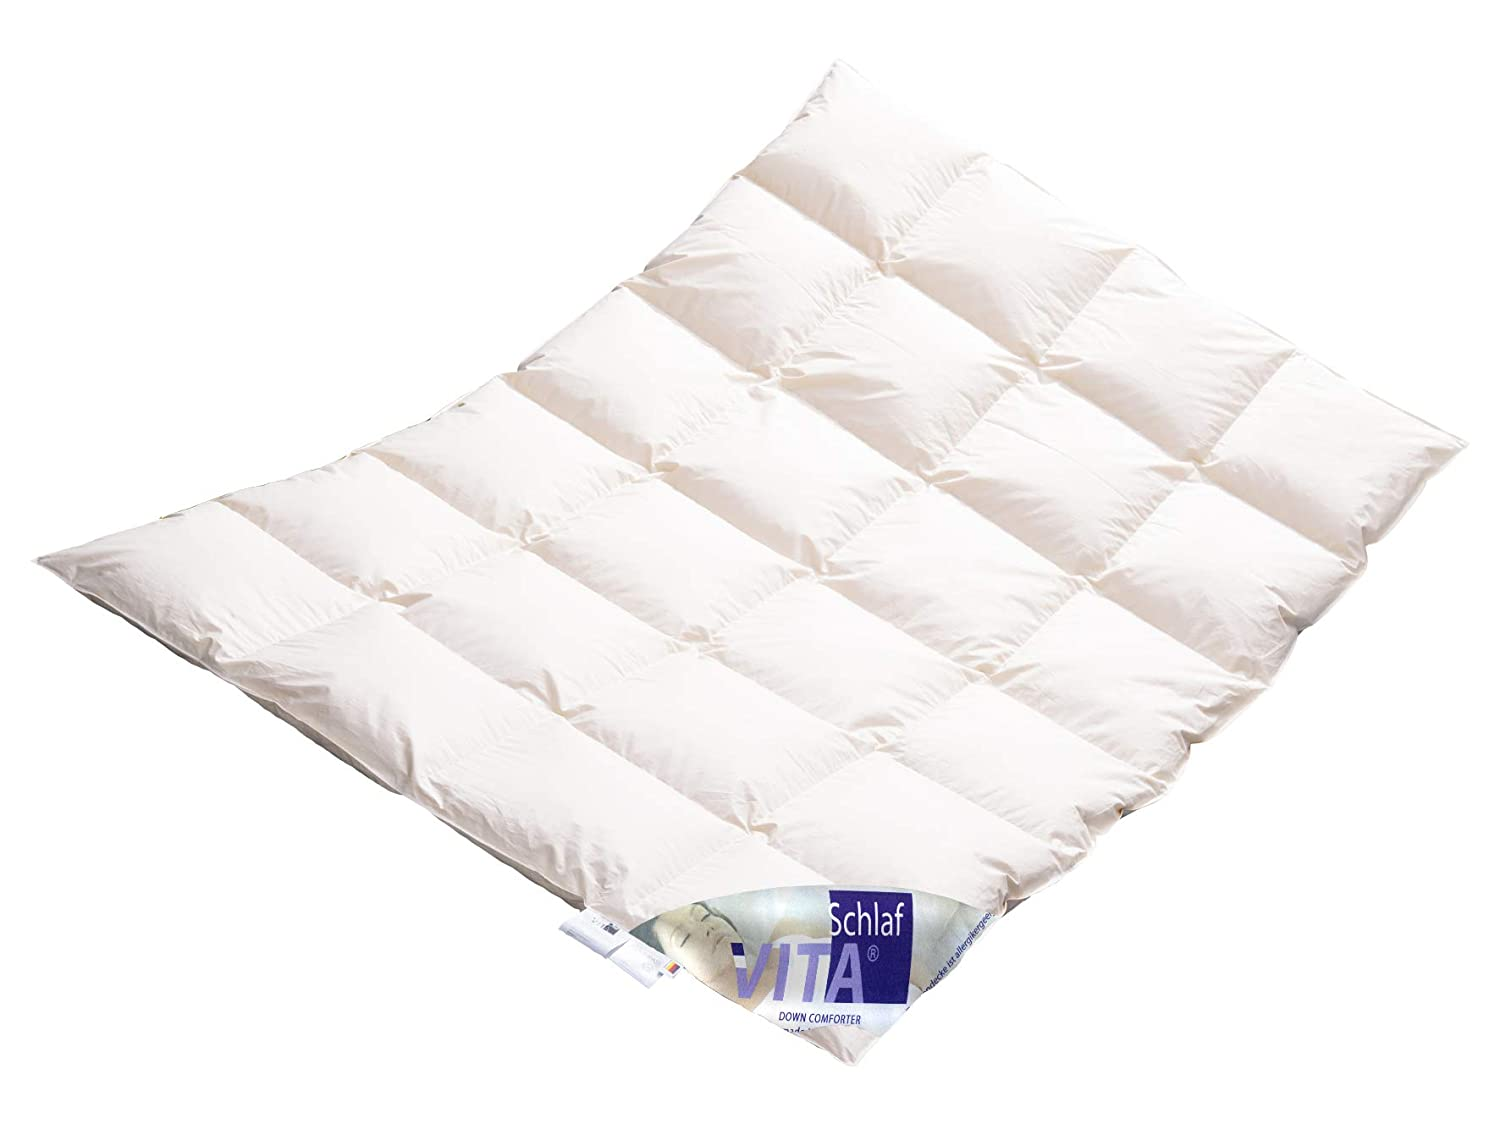 Vita® Schlaf Winter Daunendecke Daunenbett MEGA WARM Premium Decke WILDENTE Made in Germany Since 1947 Große Größen (200x220cm)